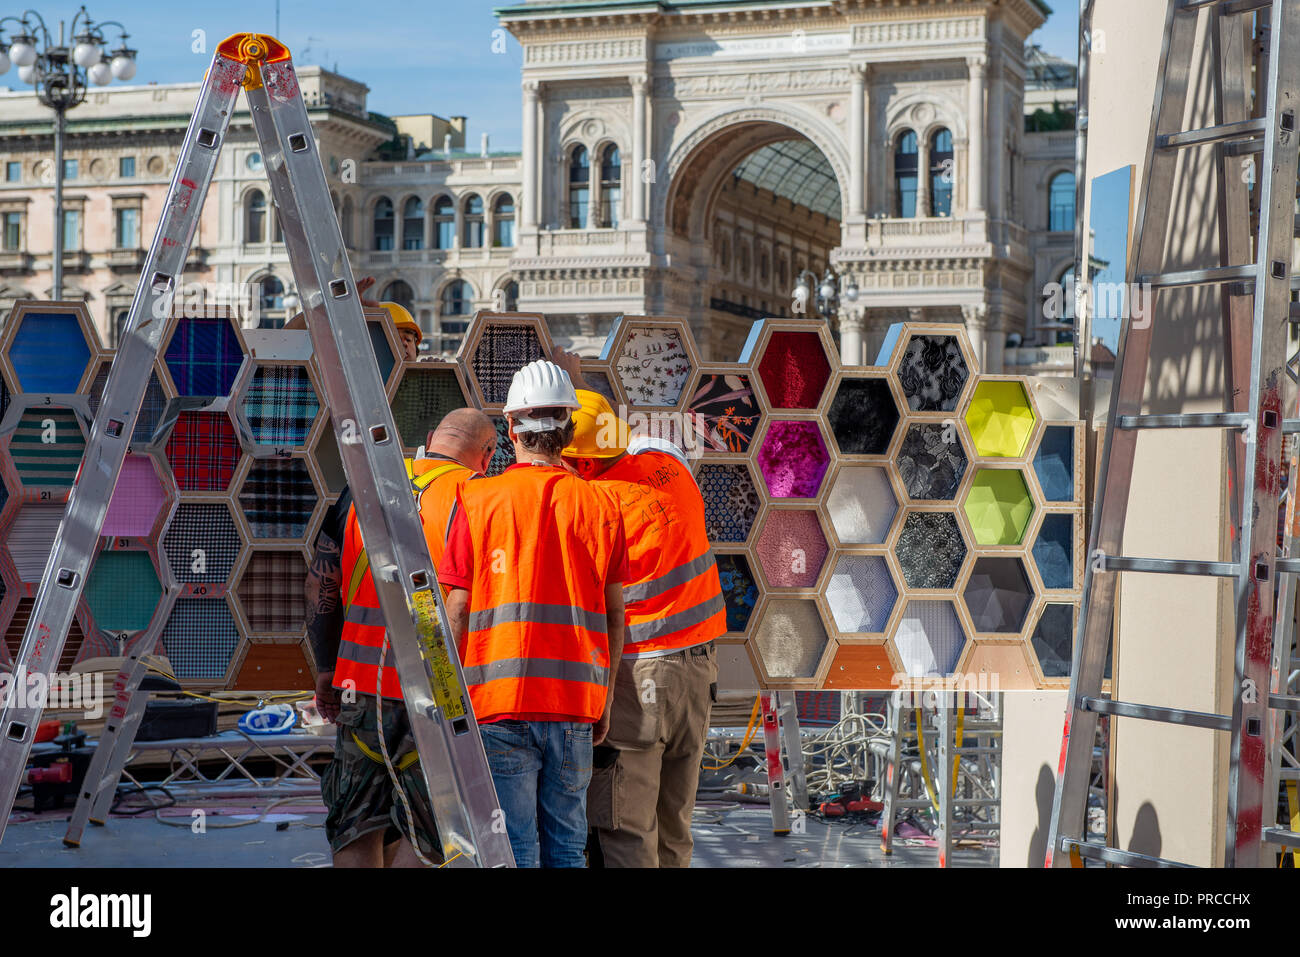 Milan Italy September 26th 2018: workers who dismantle the artistic installation in Piazza Duomo in Milan - Stock Image